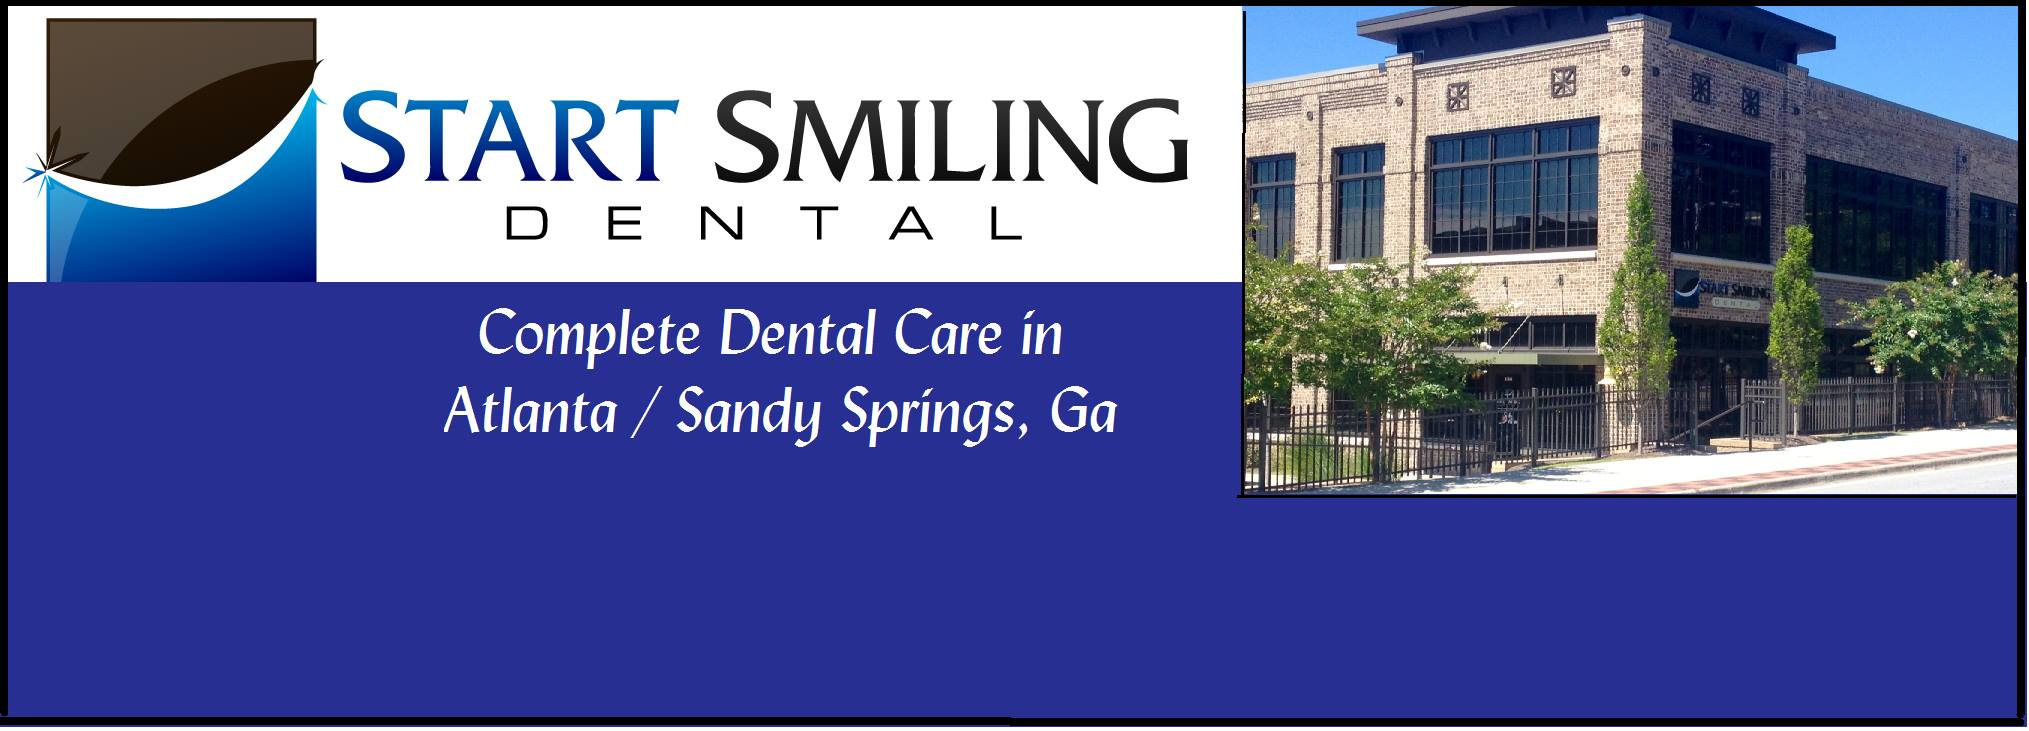 Start Smiling Dental reviews | Cosmetic Dentists at 185 Allen Rd. - Sandy Springs GA